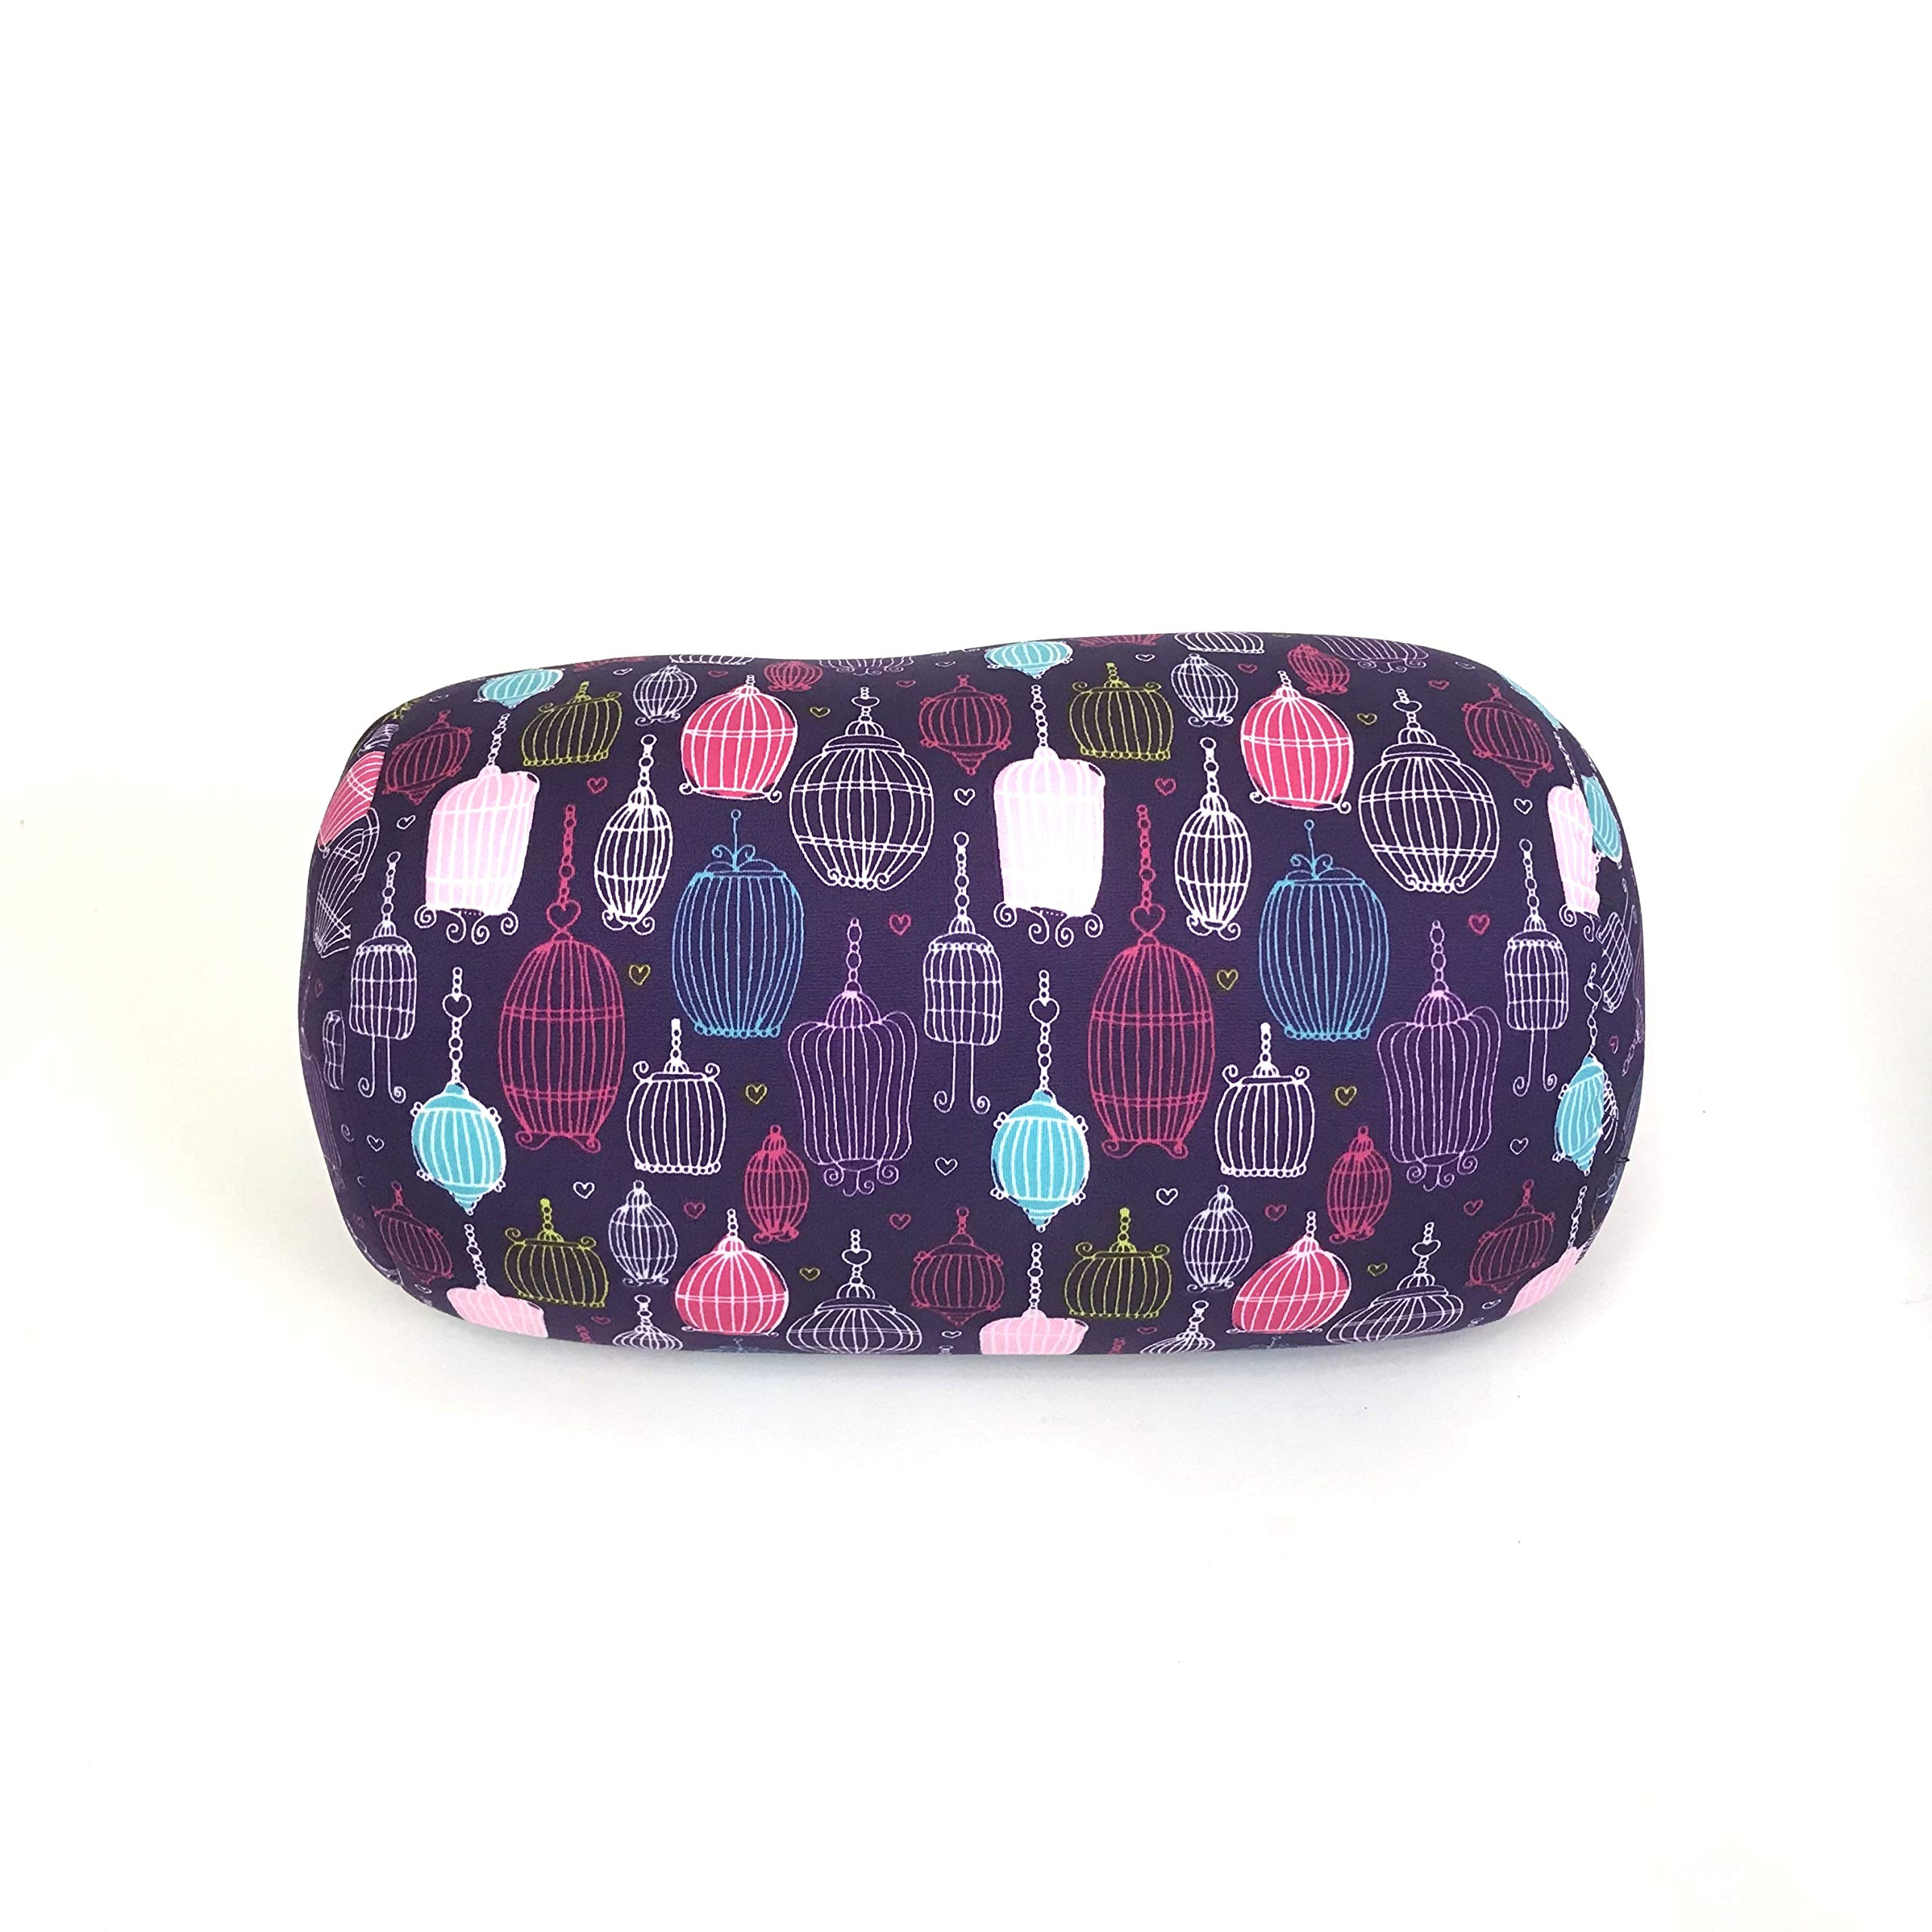 """Bookishbunny Home Office Chair Car Seat Cushion Micro Bead Roll Pillow 7"""" x 12"""" Head Neck Back Body Comfort (Bird Cage)"""